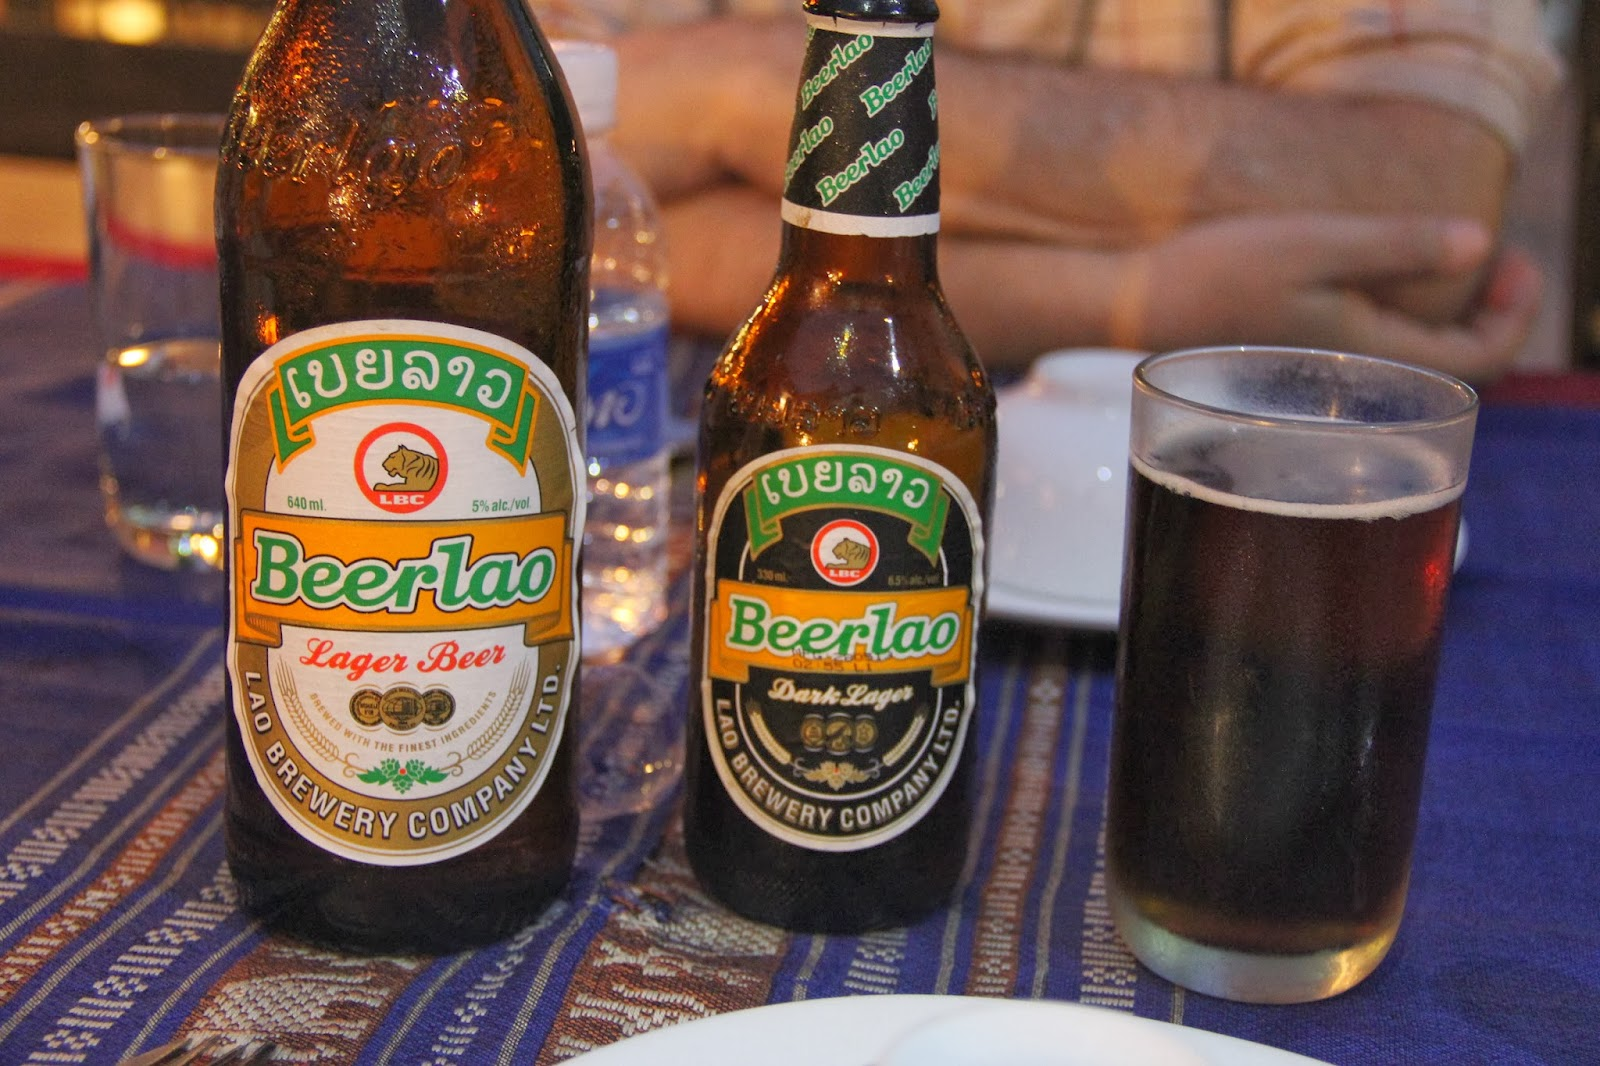 A new country, a new beer!  Lager and Dark Lager were our only choices in Laos.